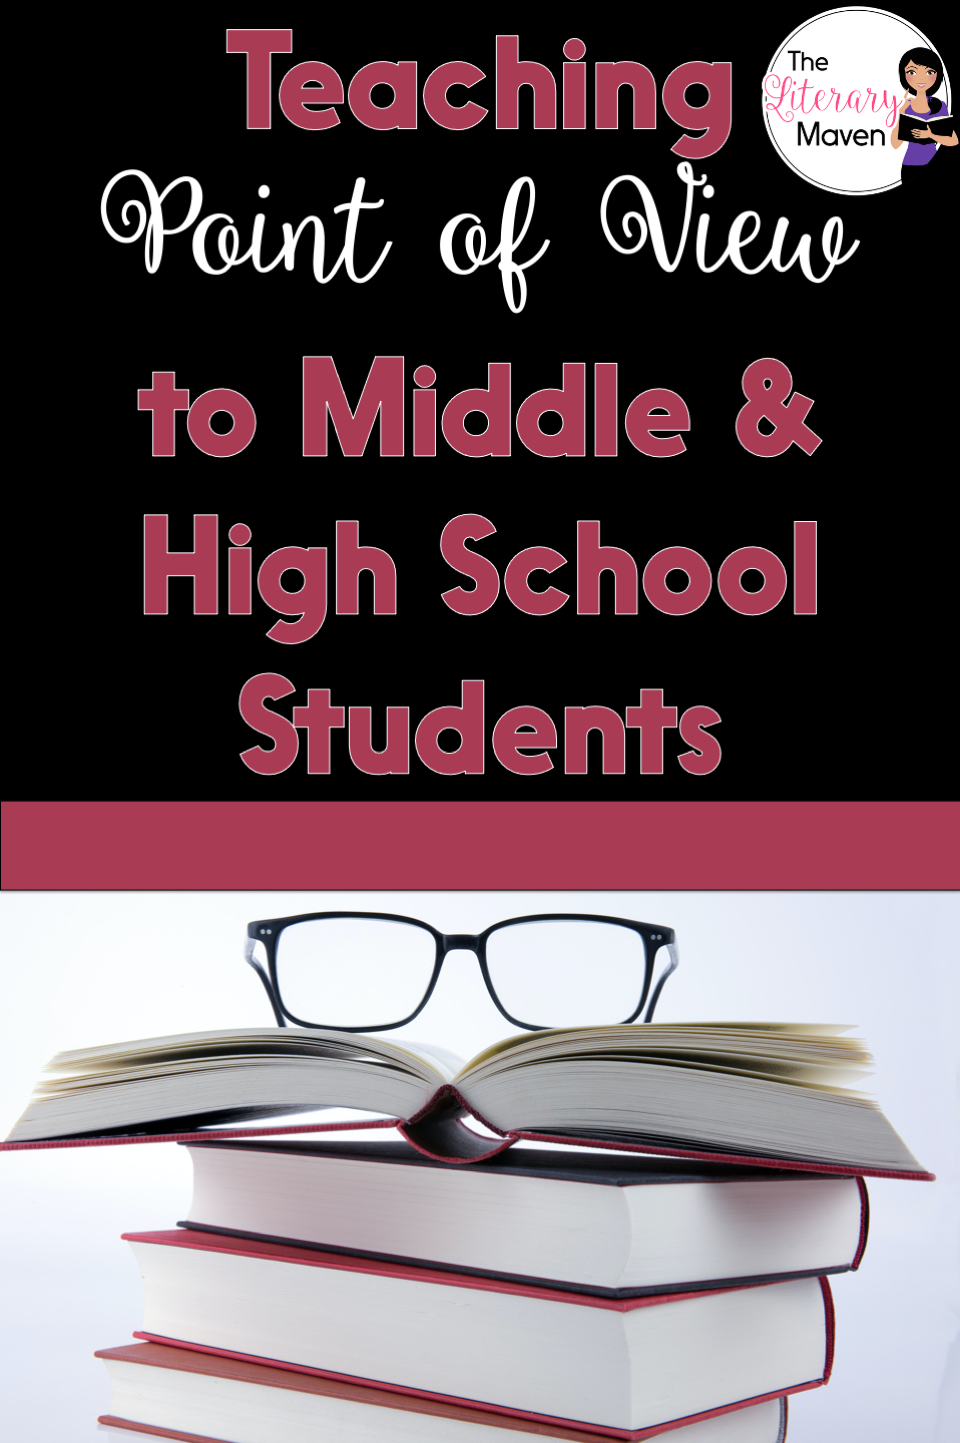 Use these ideas for teaching point of view to middle and high school students with any short story, novel, or drama.